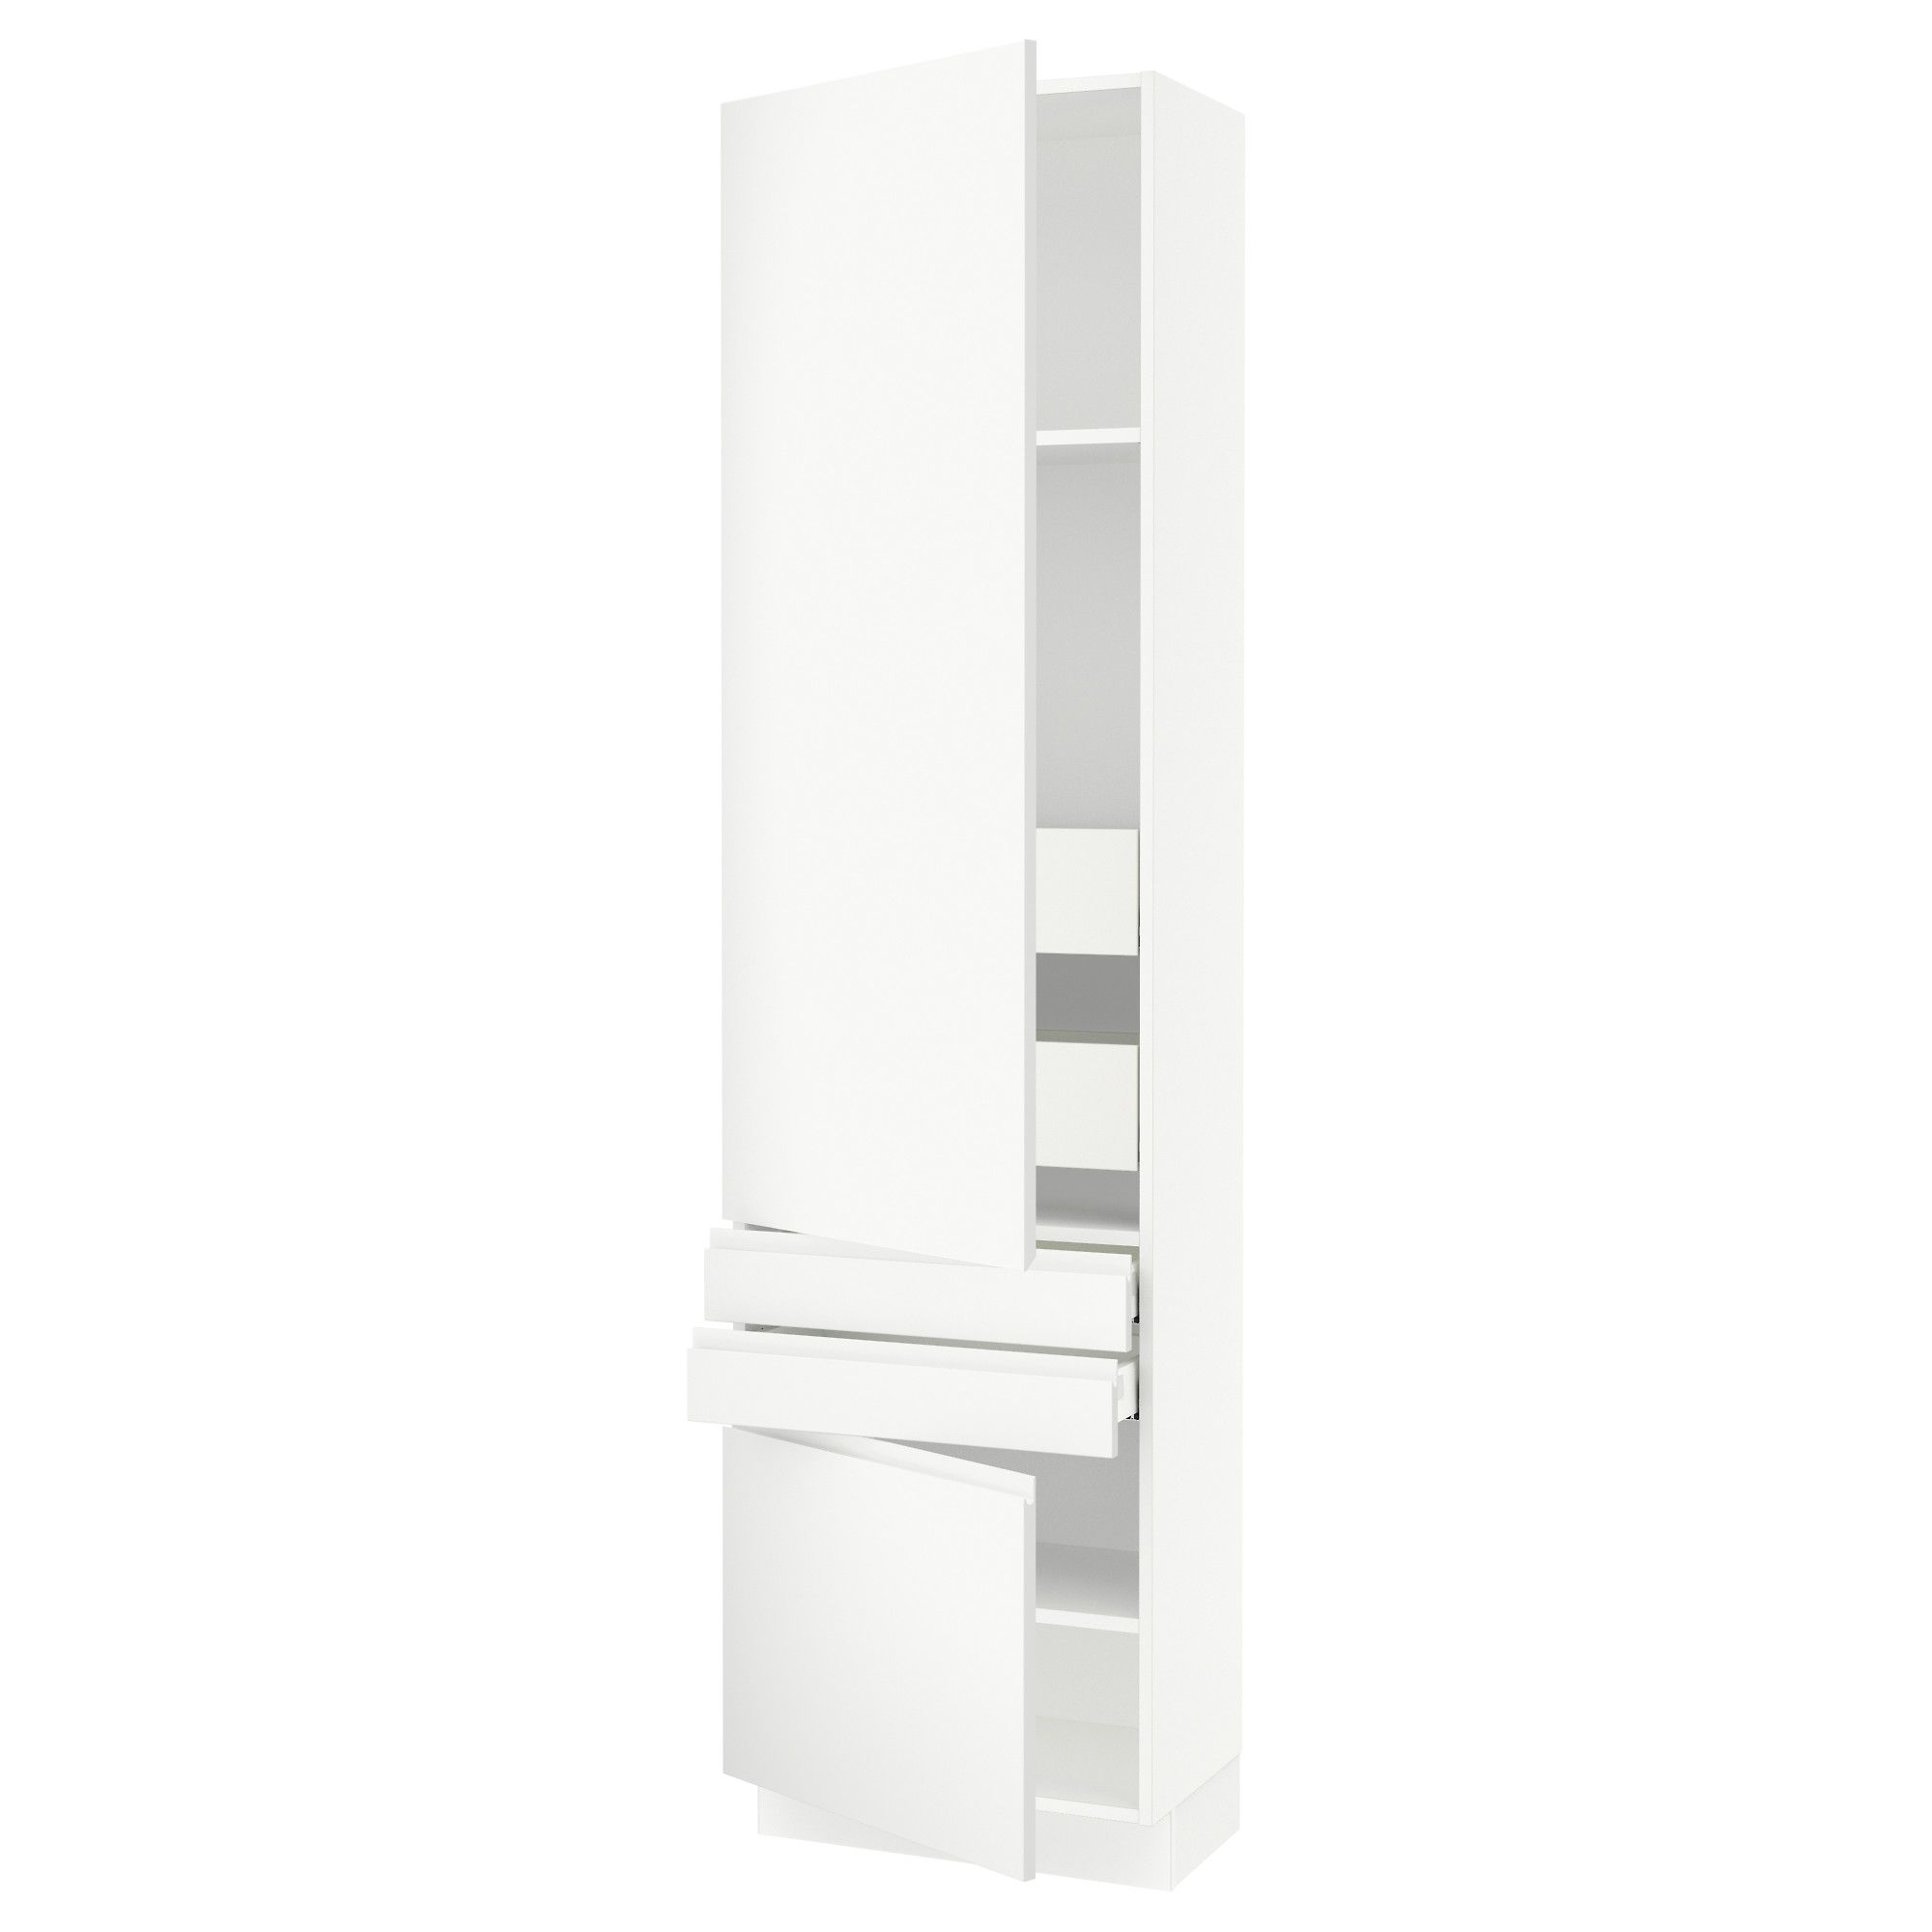 IKEA - SEKTION white High cabinet w/2doors & 4 drawers Frame colour: